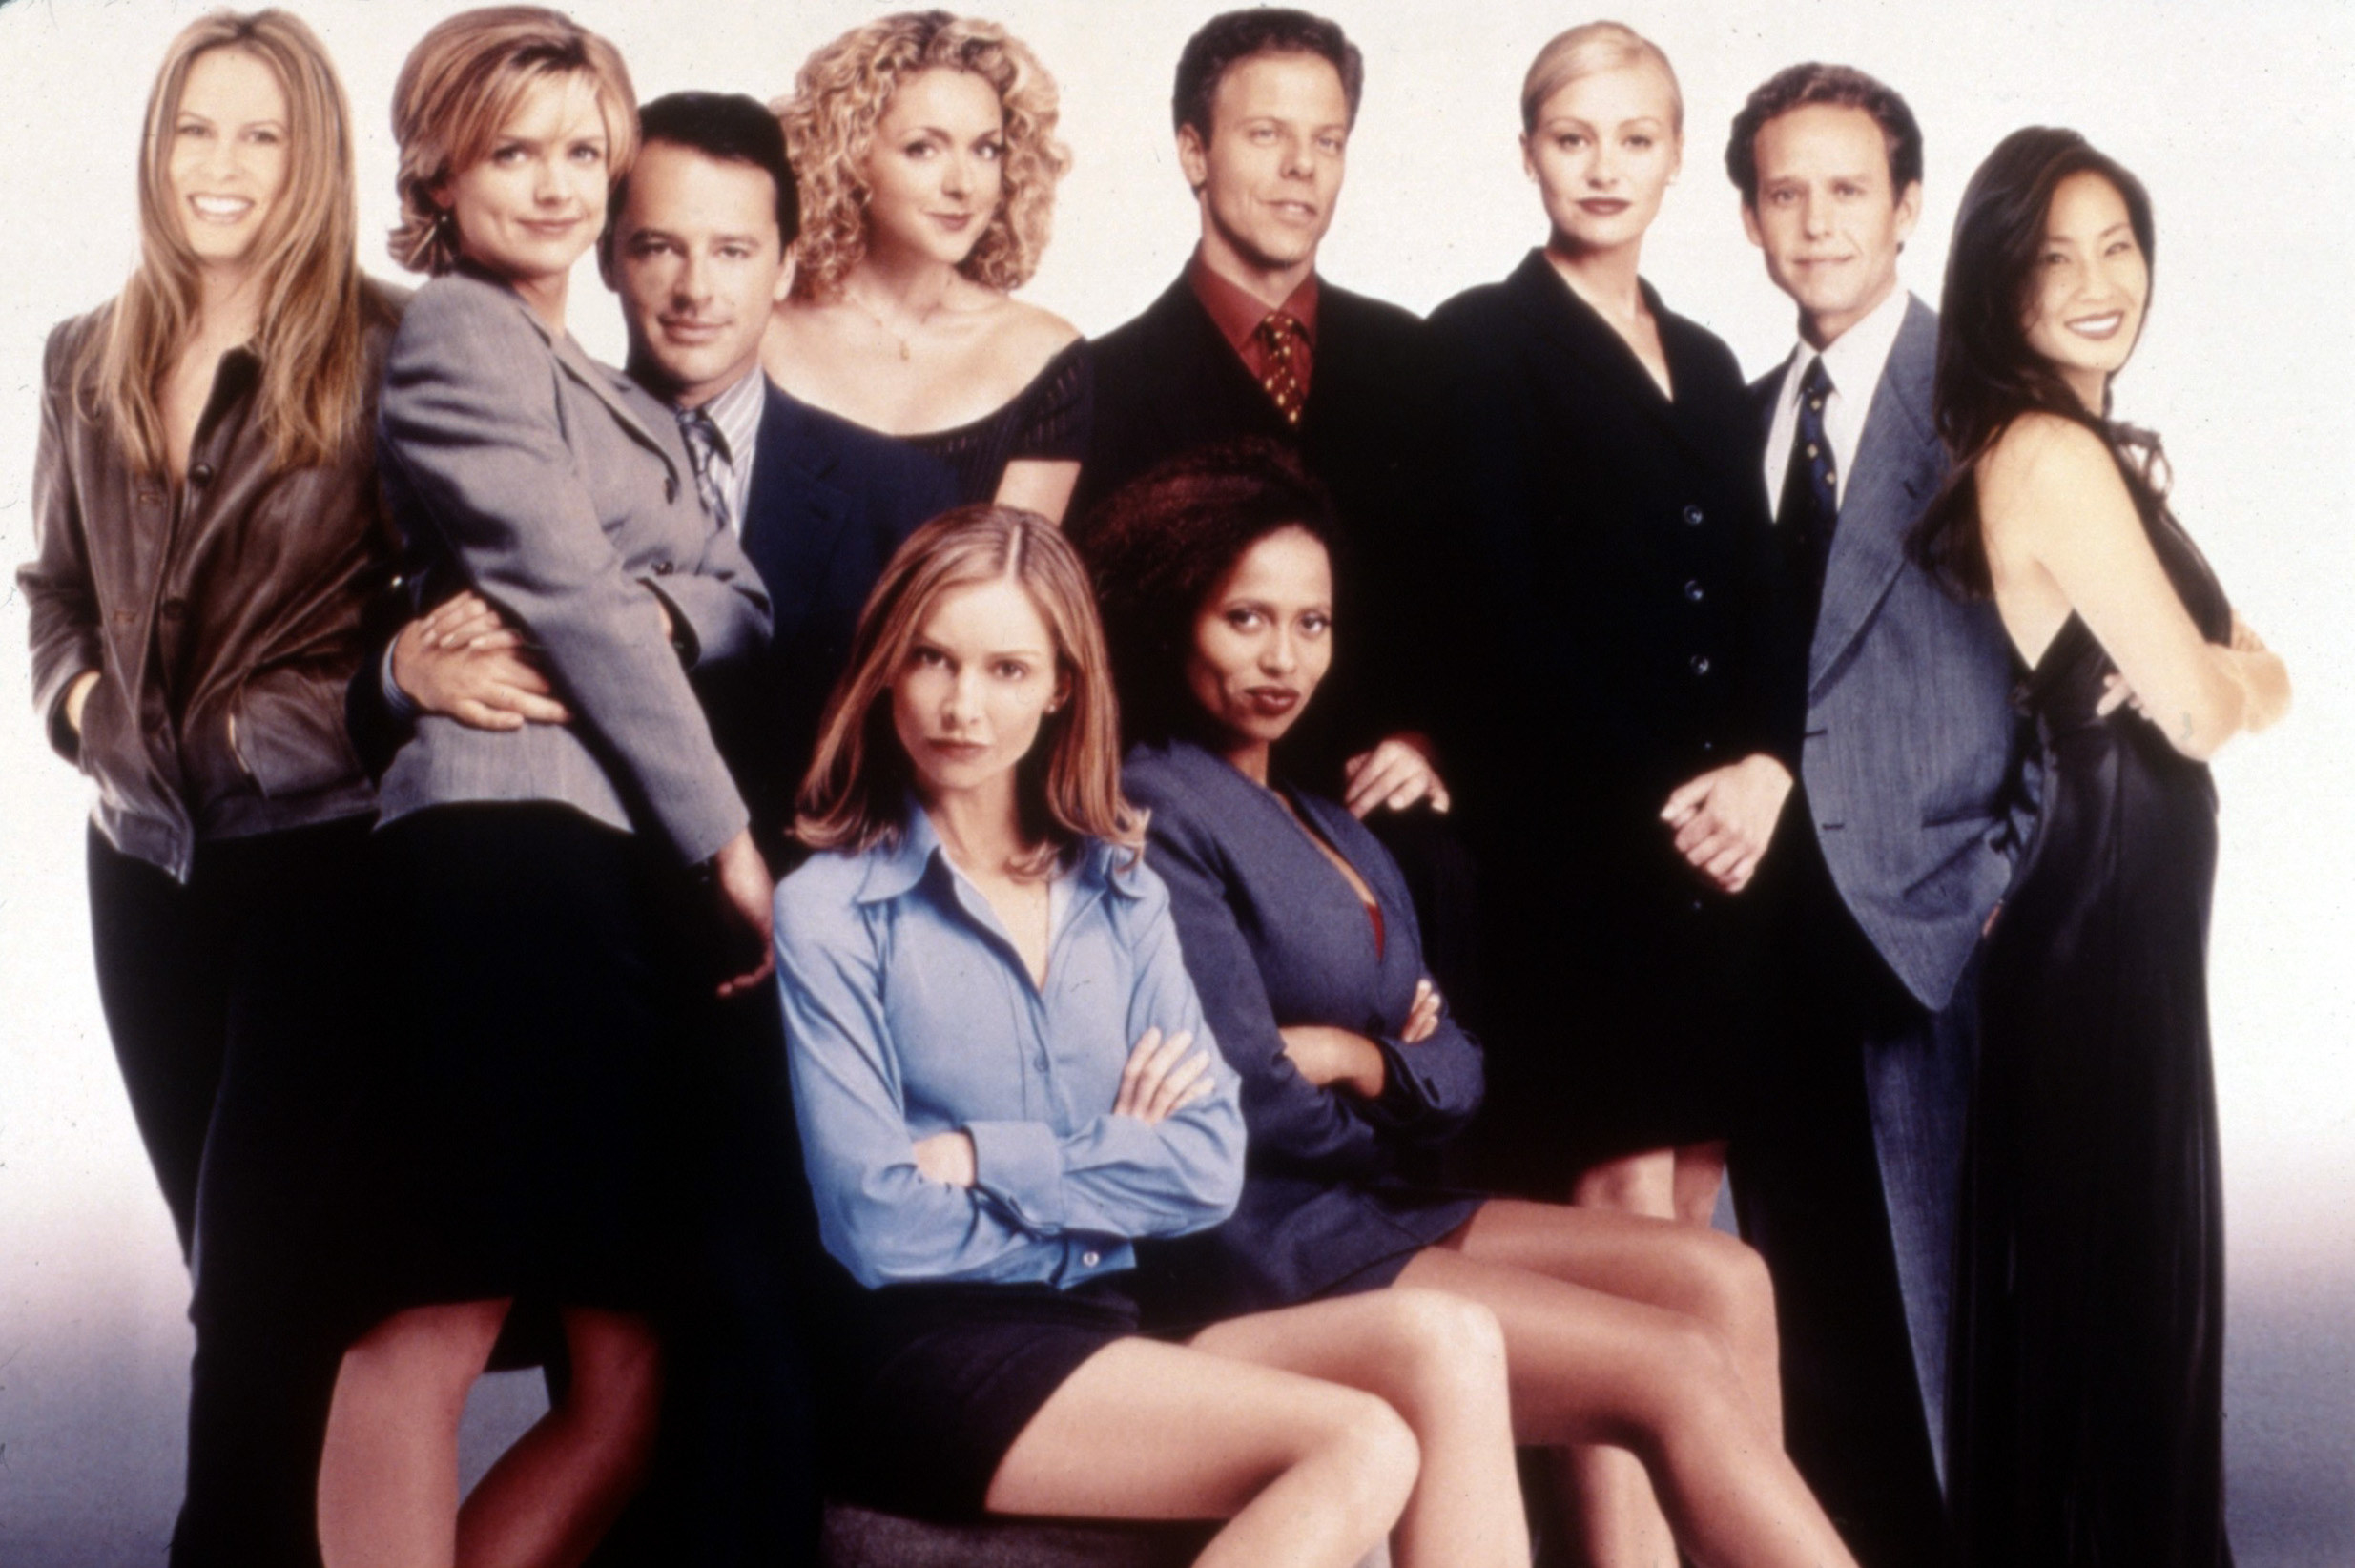 The cast of Ally McBeal